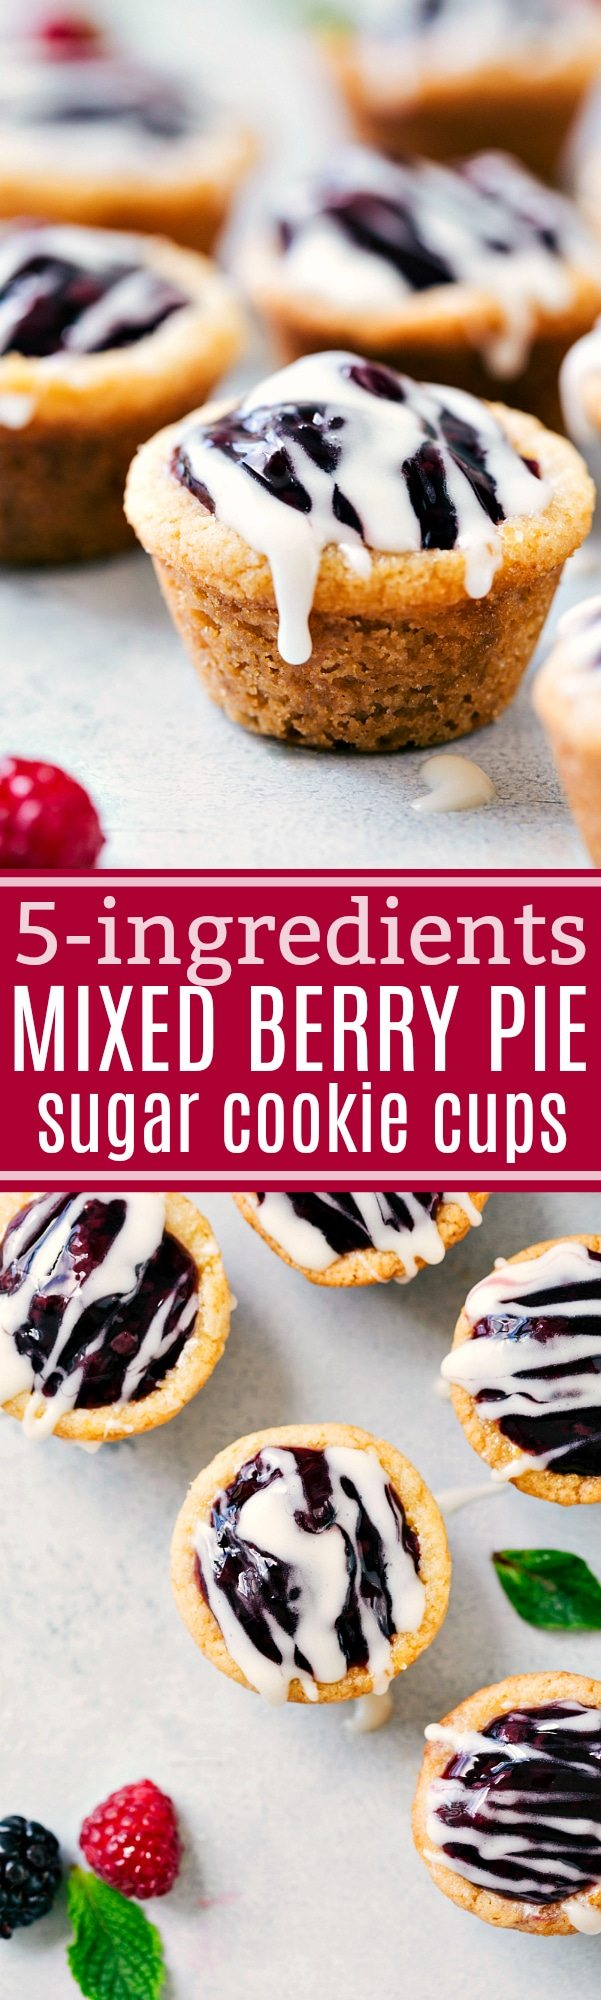 5-ingredient miniature desserts -- mini sugar cookie cups filled with mixed berry pie filling and drizzled in a pie glaze. I chelseasmessyapron.com